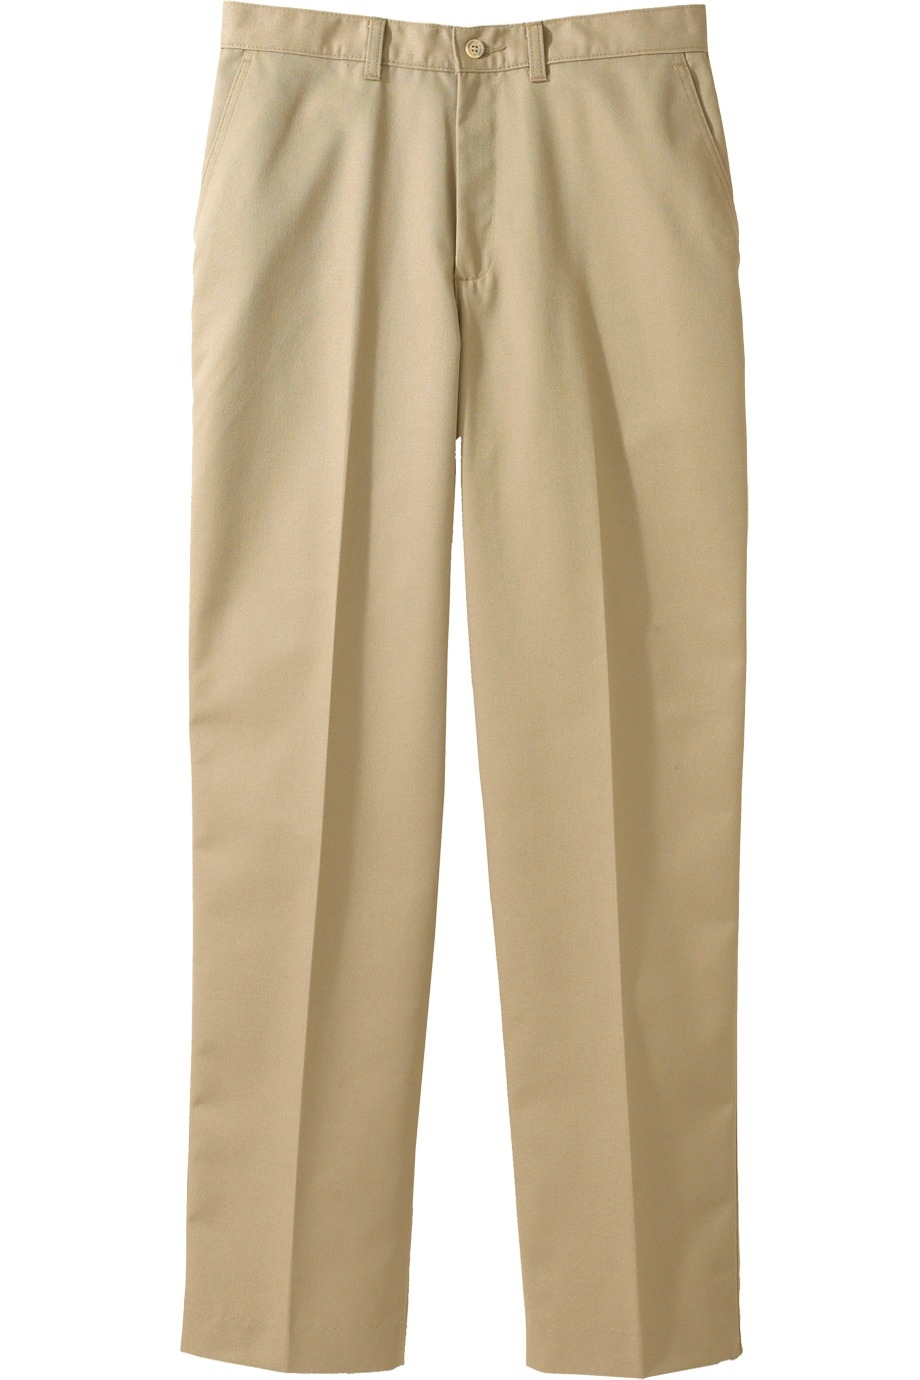 Edwards Garment 2570 - Men's Blended Chino Flat Front Pant